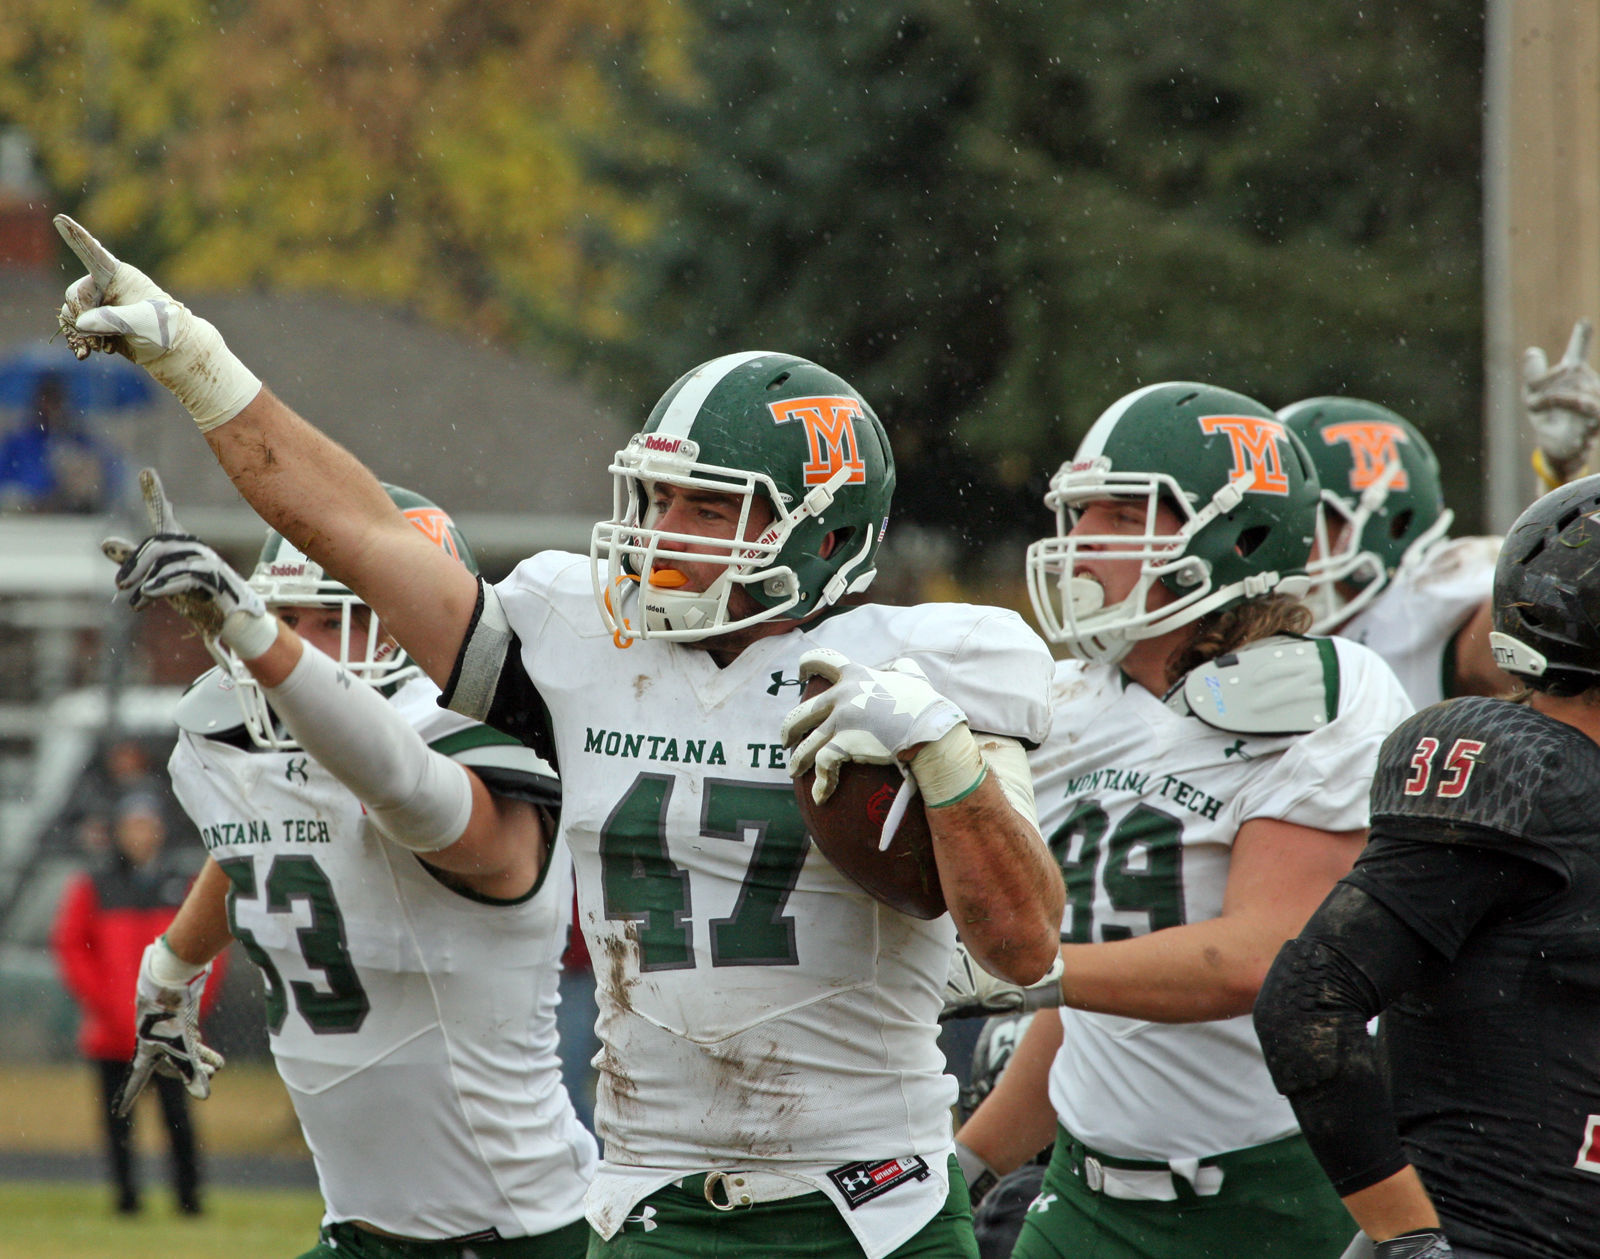 Most intimidating college football entrances to yellowstone